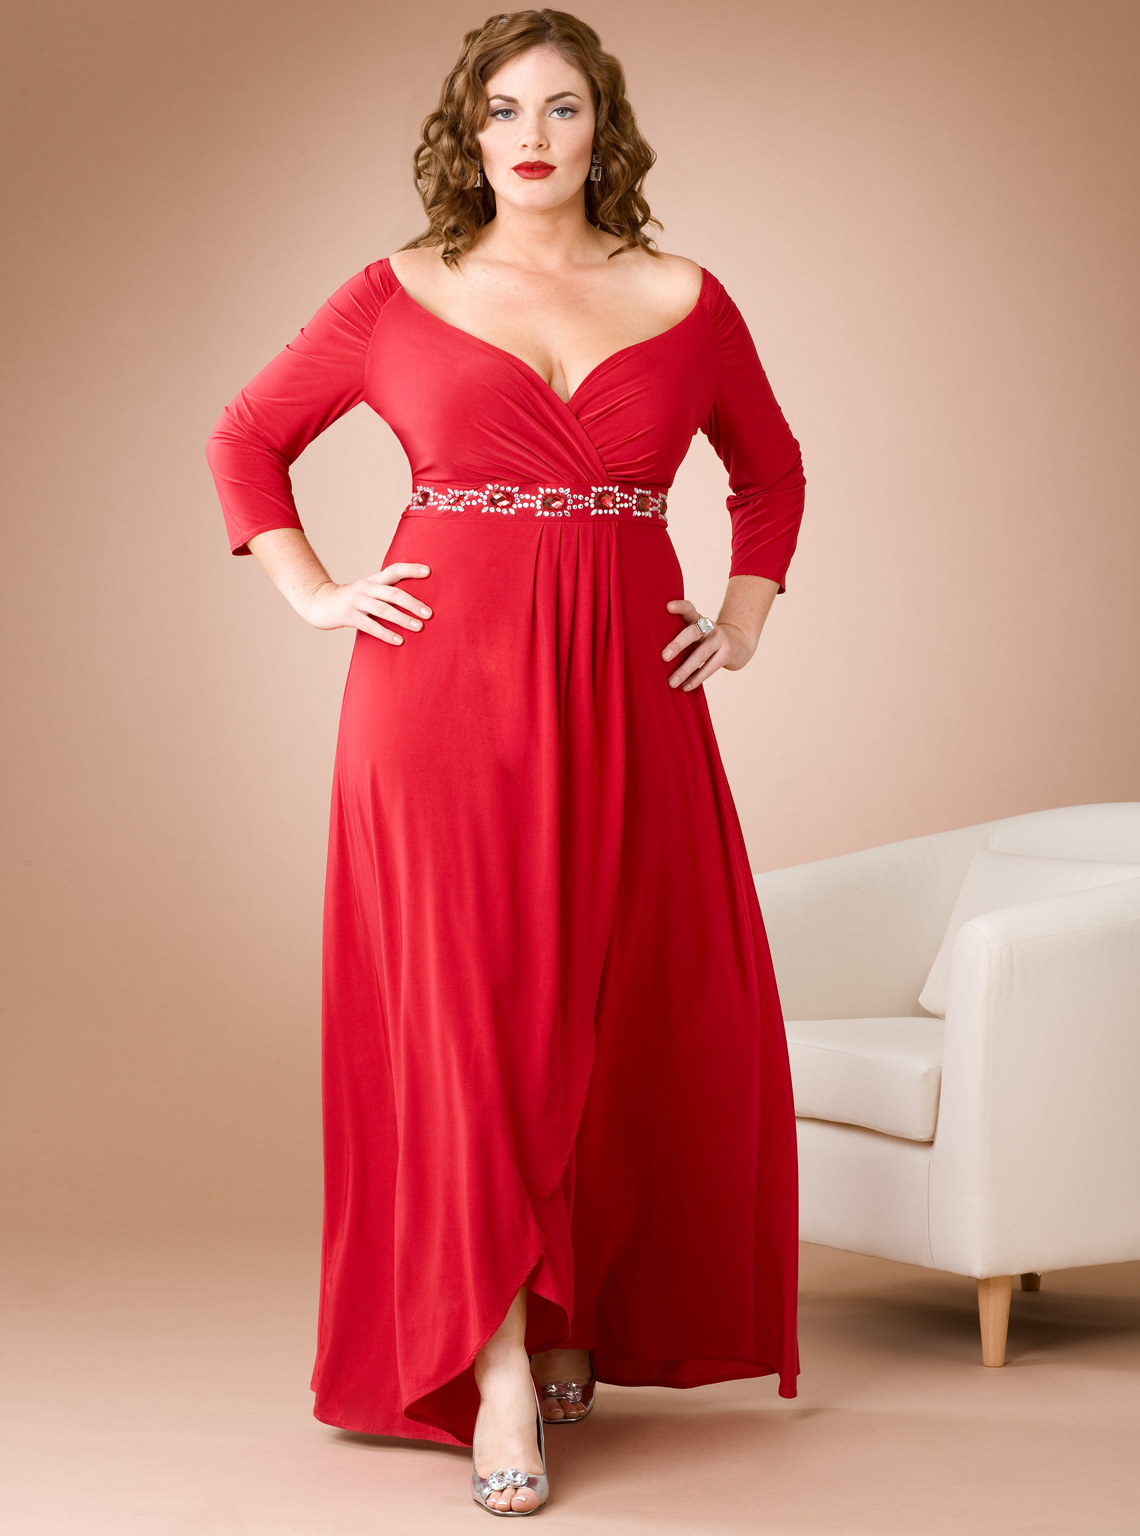 Plus Size Clothing for Women (78) Gear up with Nike plus size clothing for women. Discover a variety of colors, patterns and prints, and incorporate plus size women's clothing .